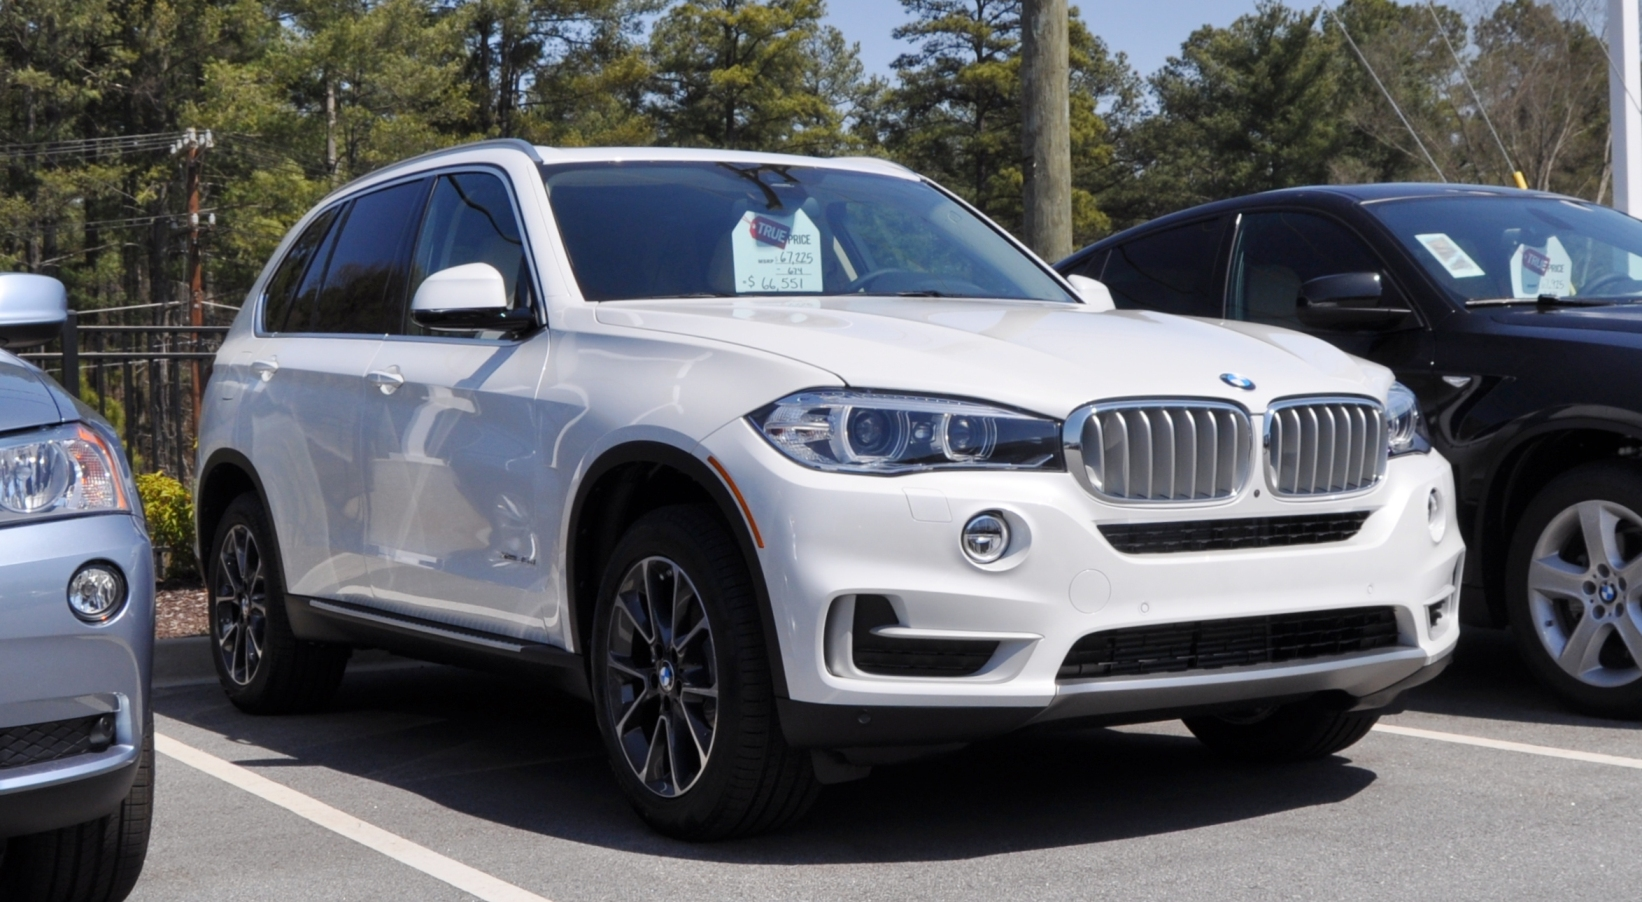 2016 BMW X7 - Information and photos - ZombieDrive